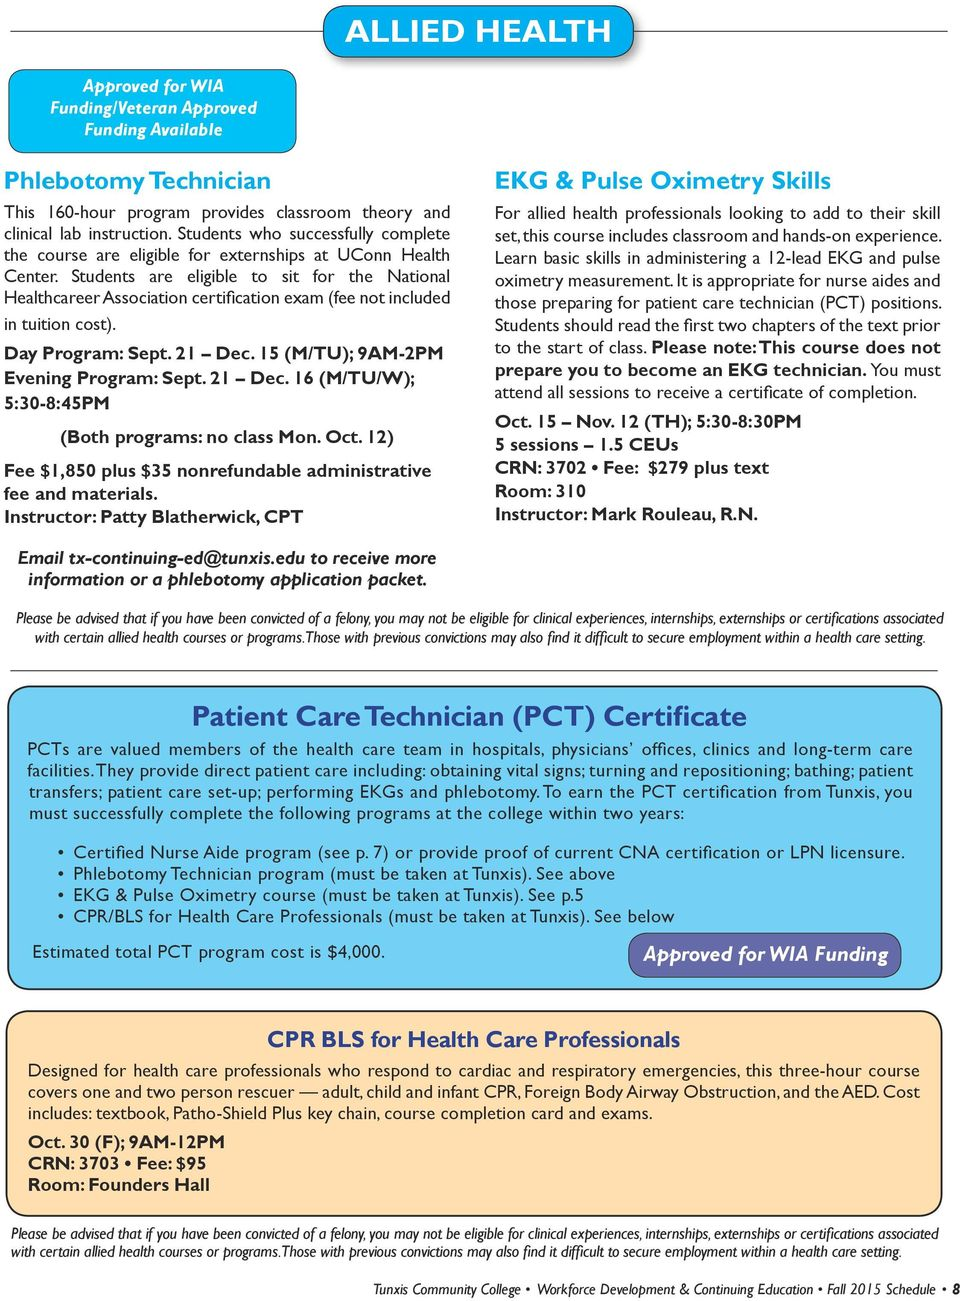 Tunxis Fall Non Credit Course Schedule Workforce Development